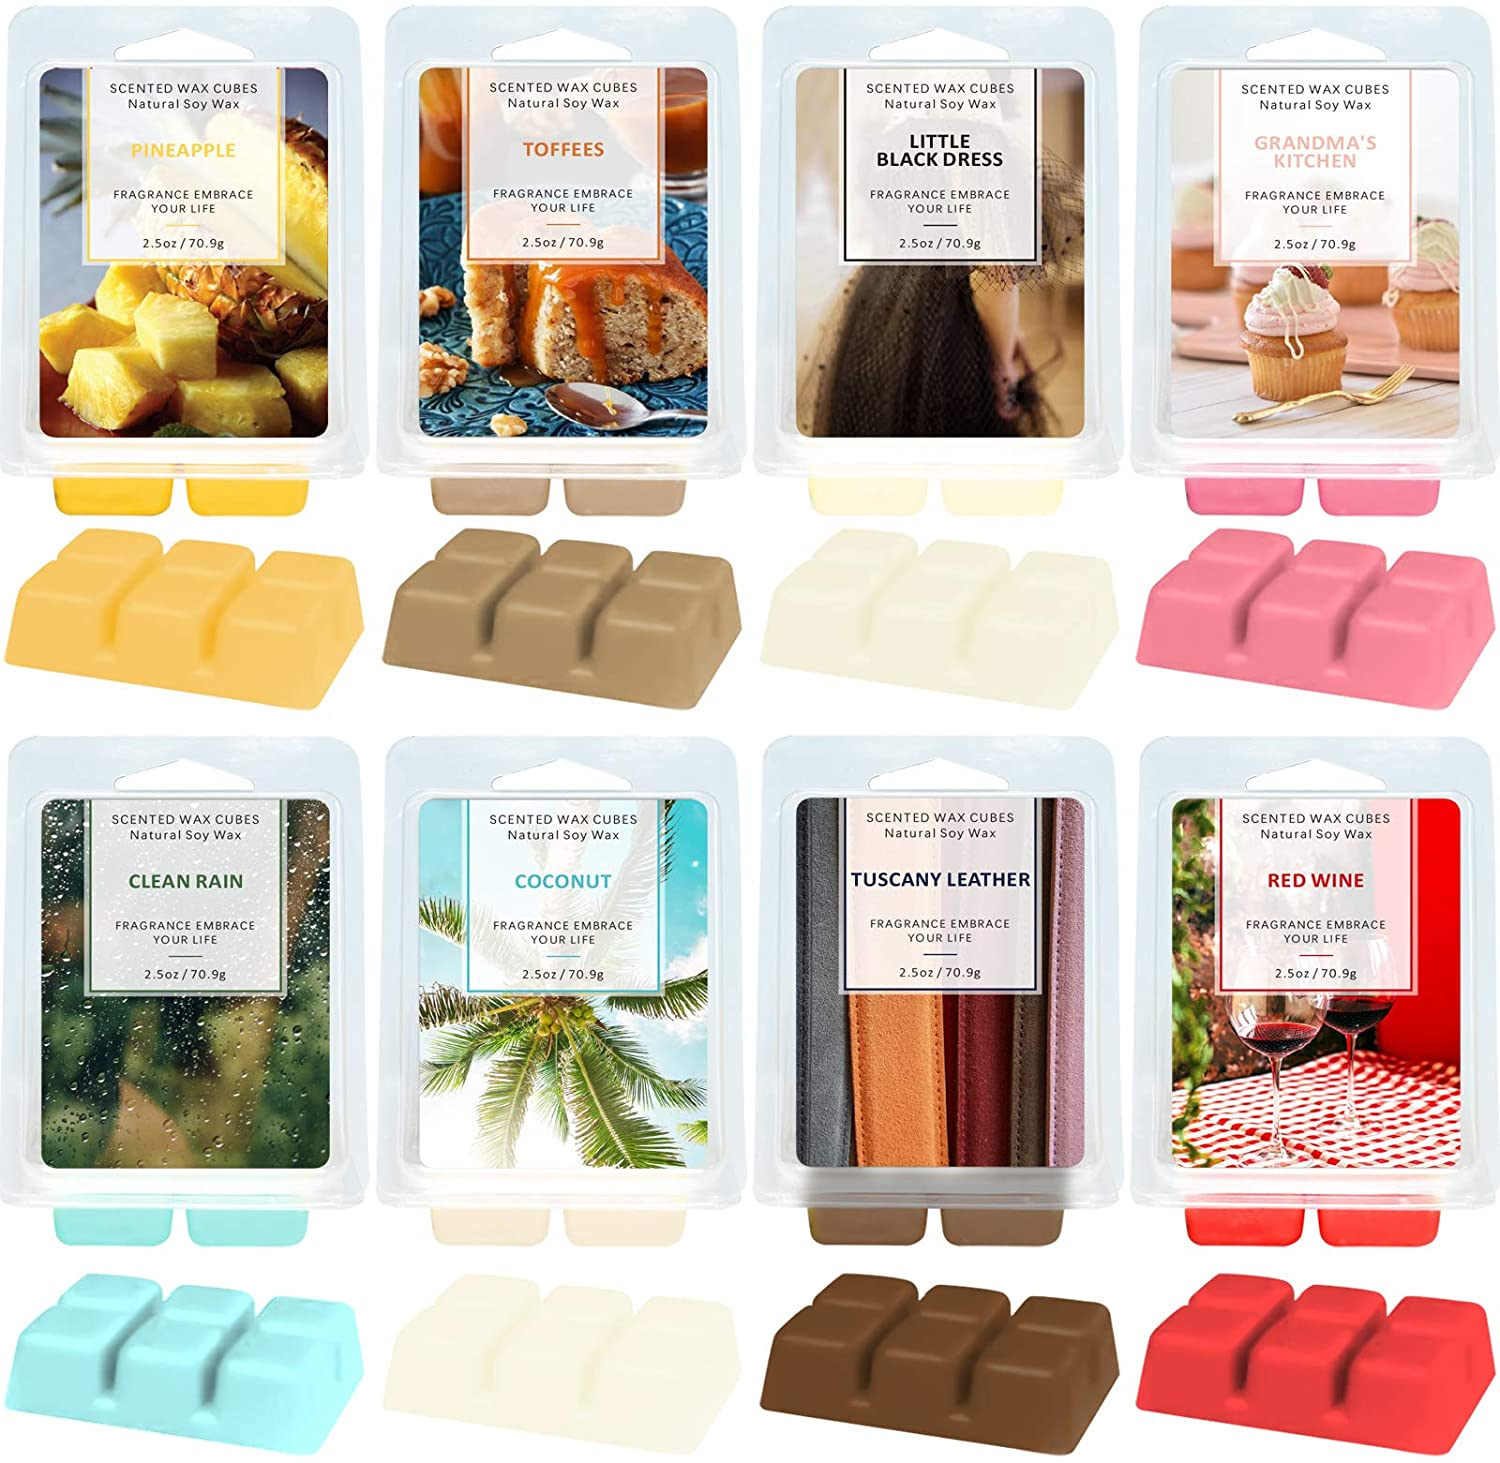 LA BELLEFÉE Scented Wax Melts, Wax Cube Wax Melts, Elegant Fragrance Wax Cubes,Candle Wax Warmer Melts,Wax Cubes for Home, Scented Natural Soy Wax Cube,8X 2.5 oz